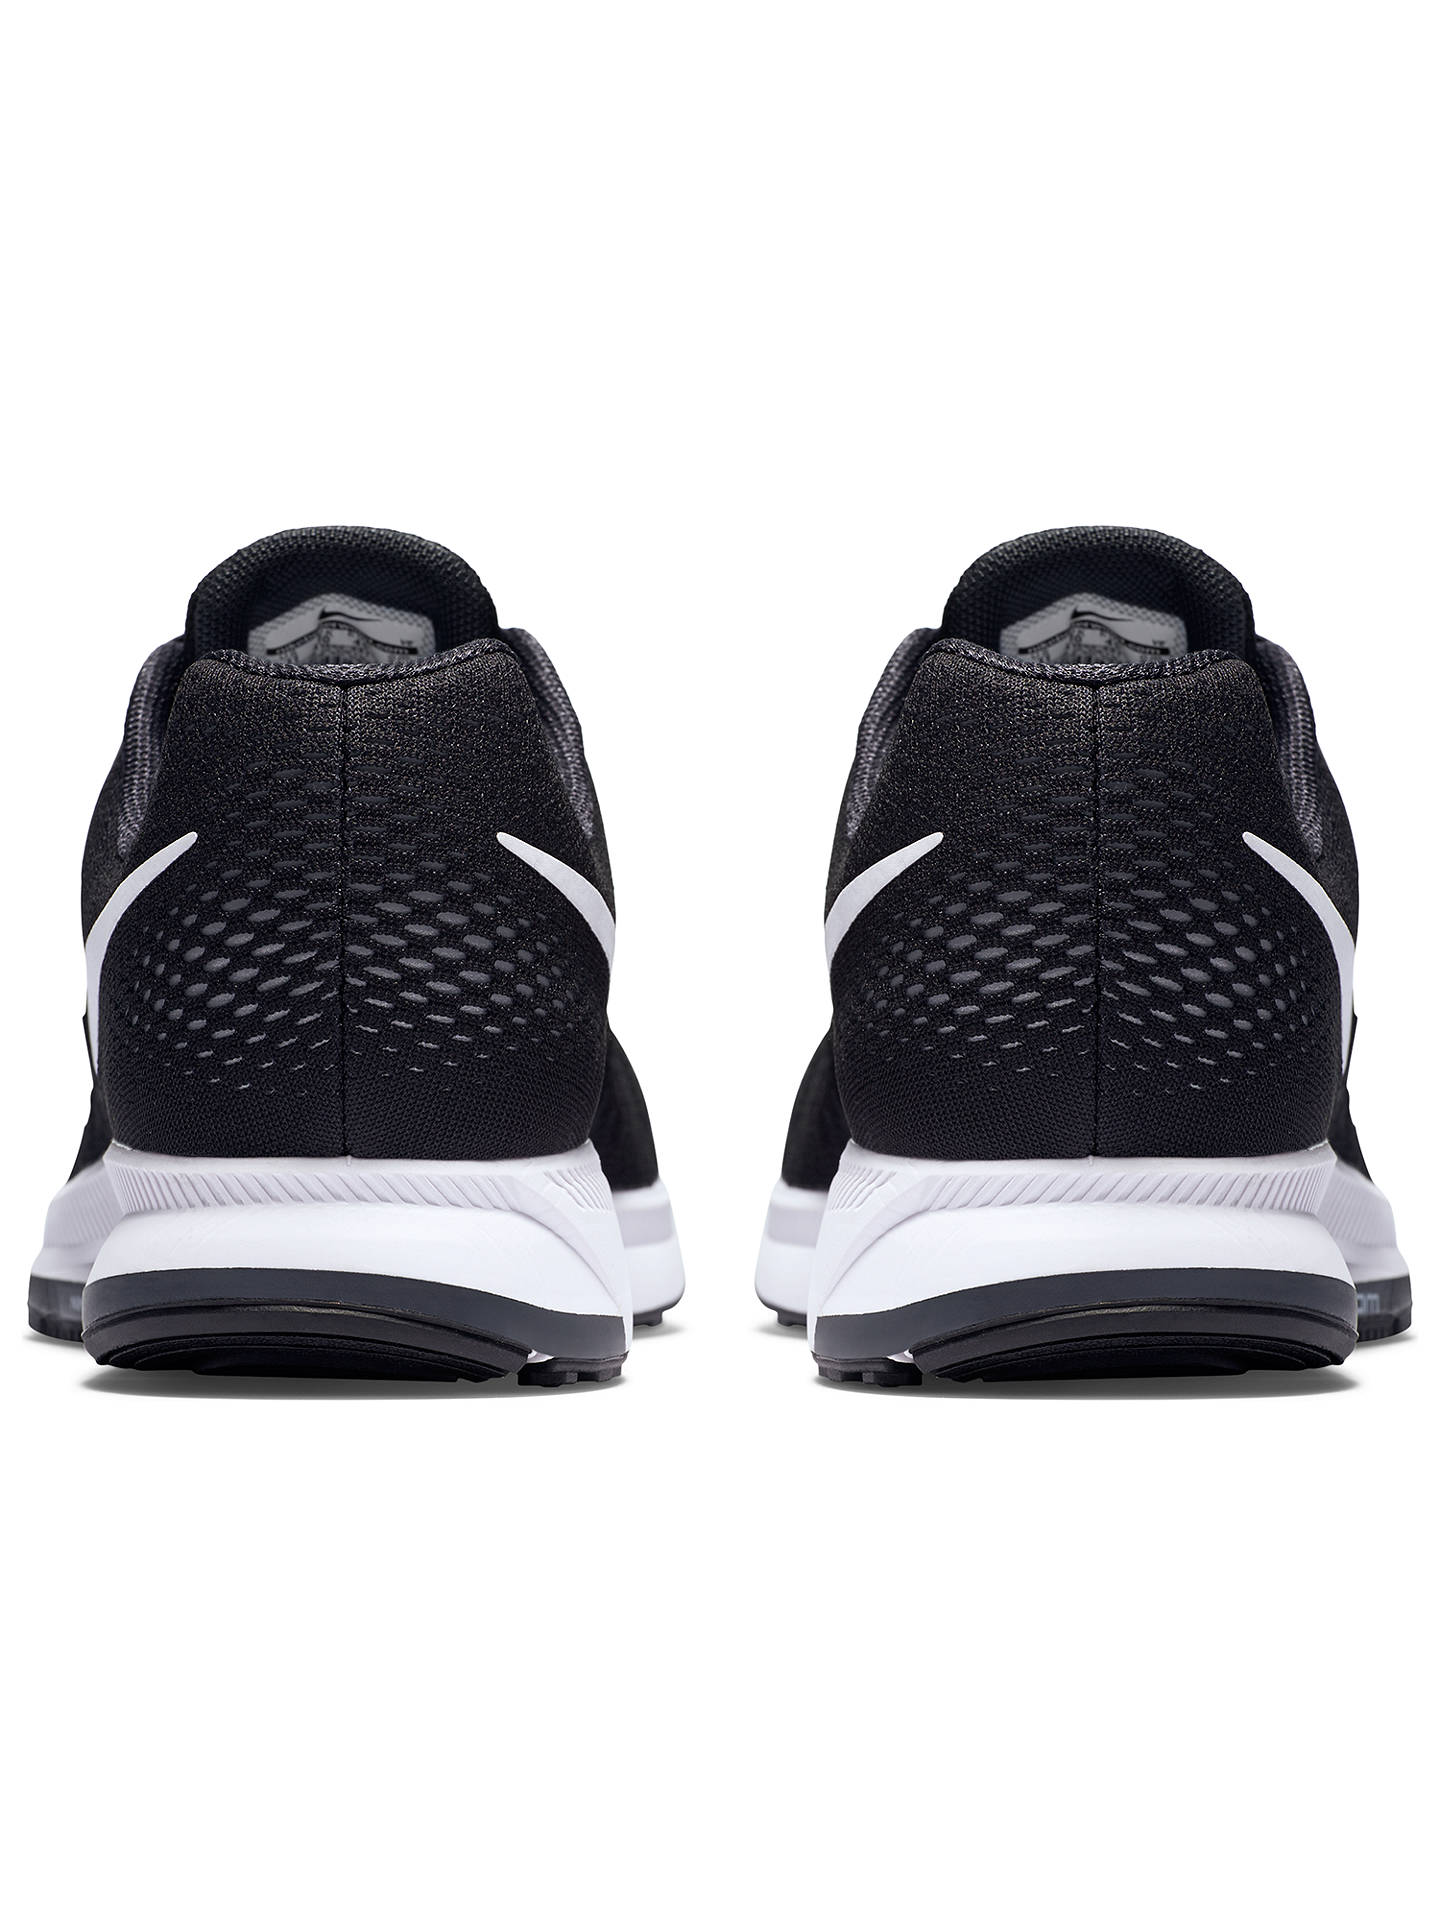 separation shoes 5d919 a3ea1 Nike Air Zoom Pegasus 33 Men's Running Shoes, Black/White at ...